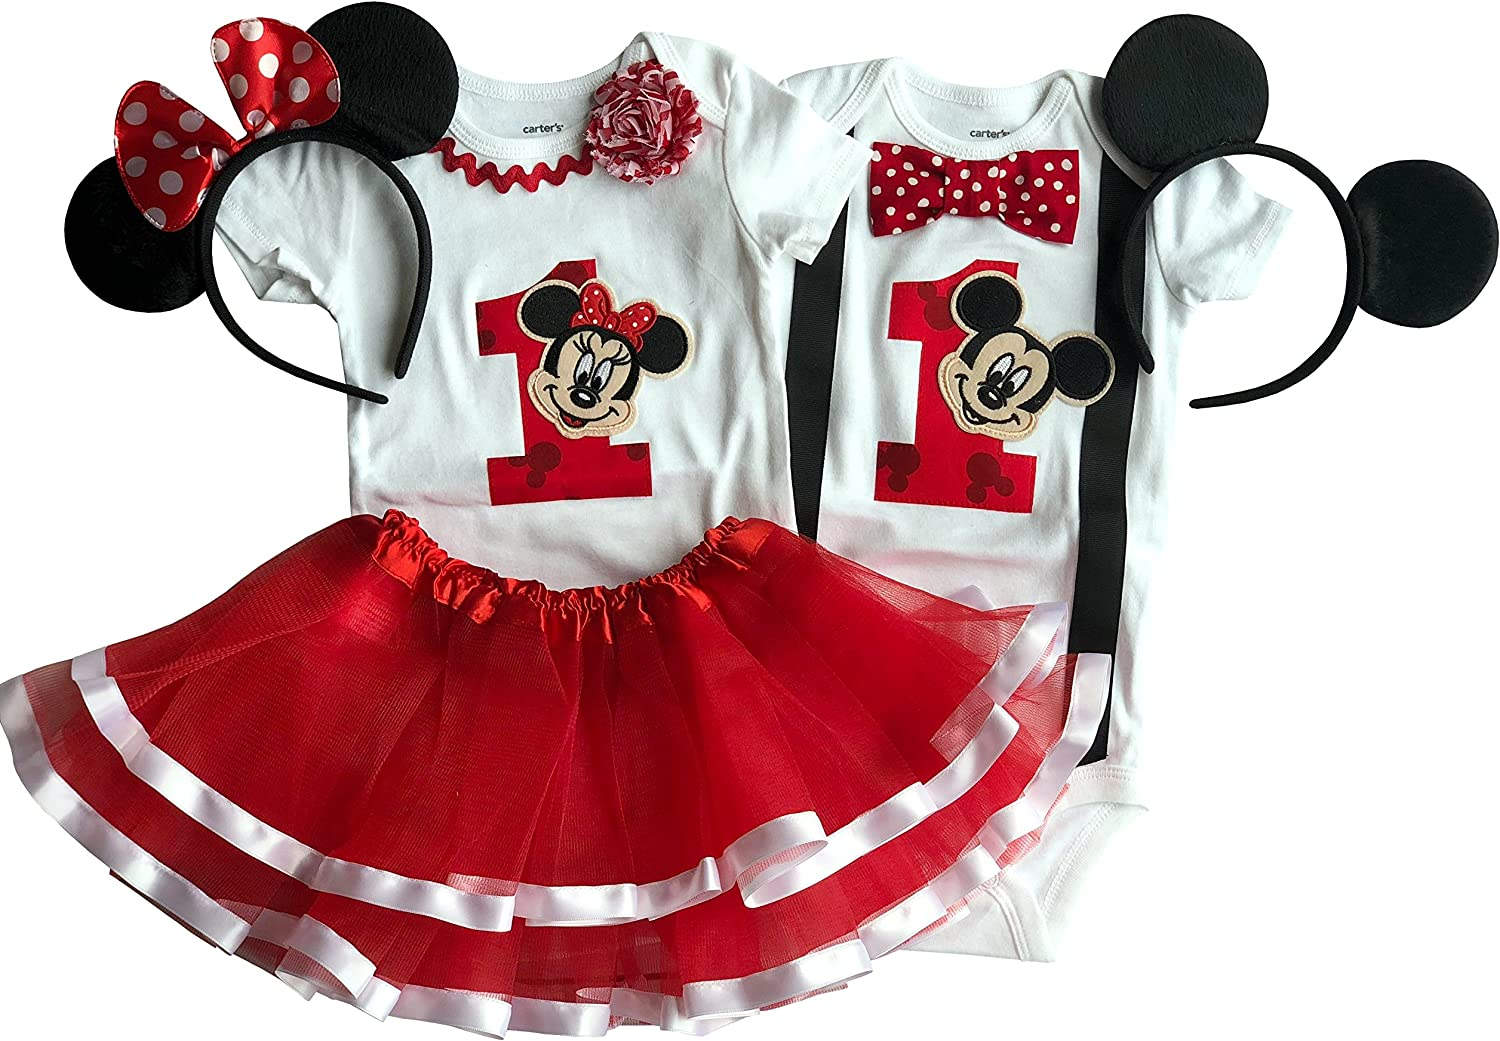 Perfect Max 60% Max 42% OFF OFF Pairz Boy Girl Twin Outfits Birthday Clot Baby Twins 1st